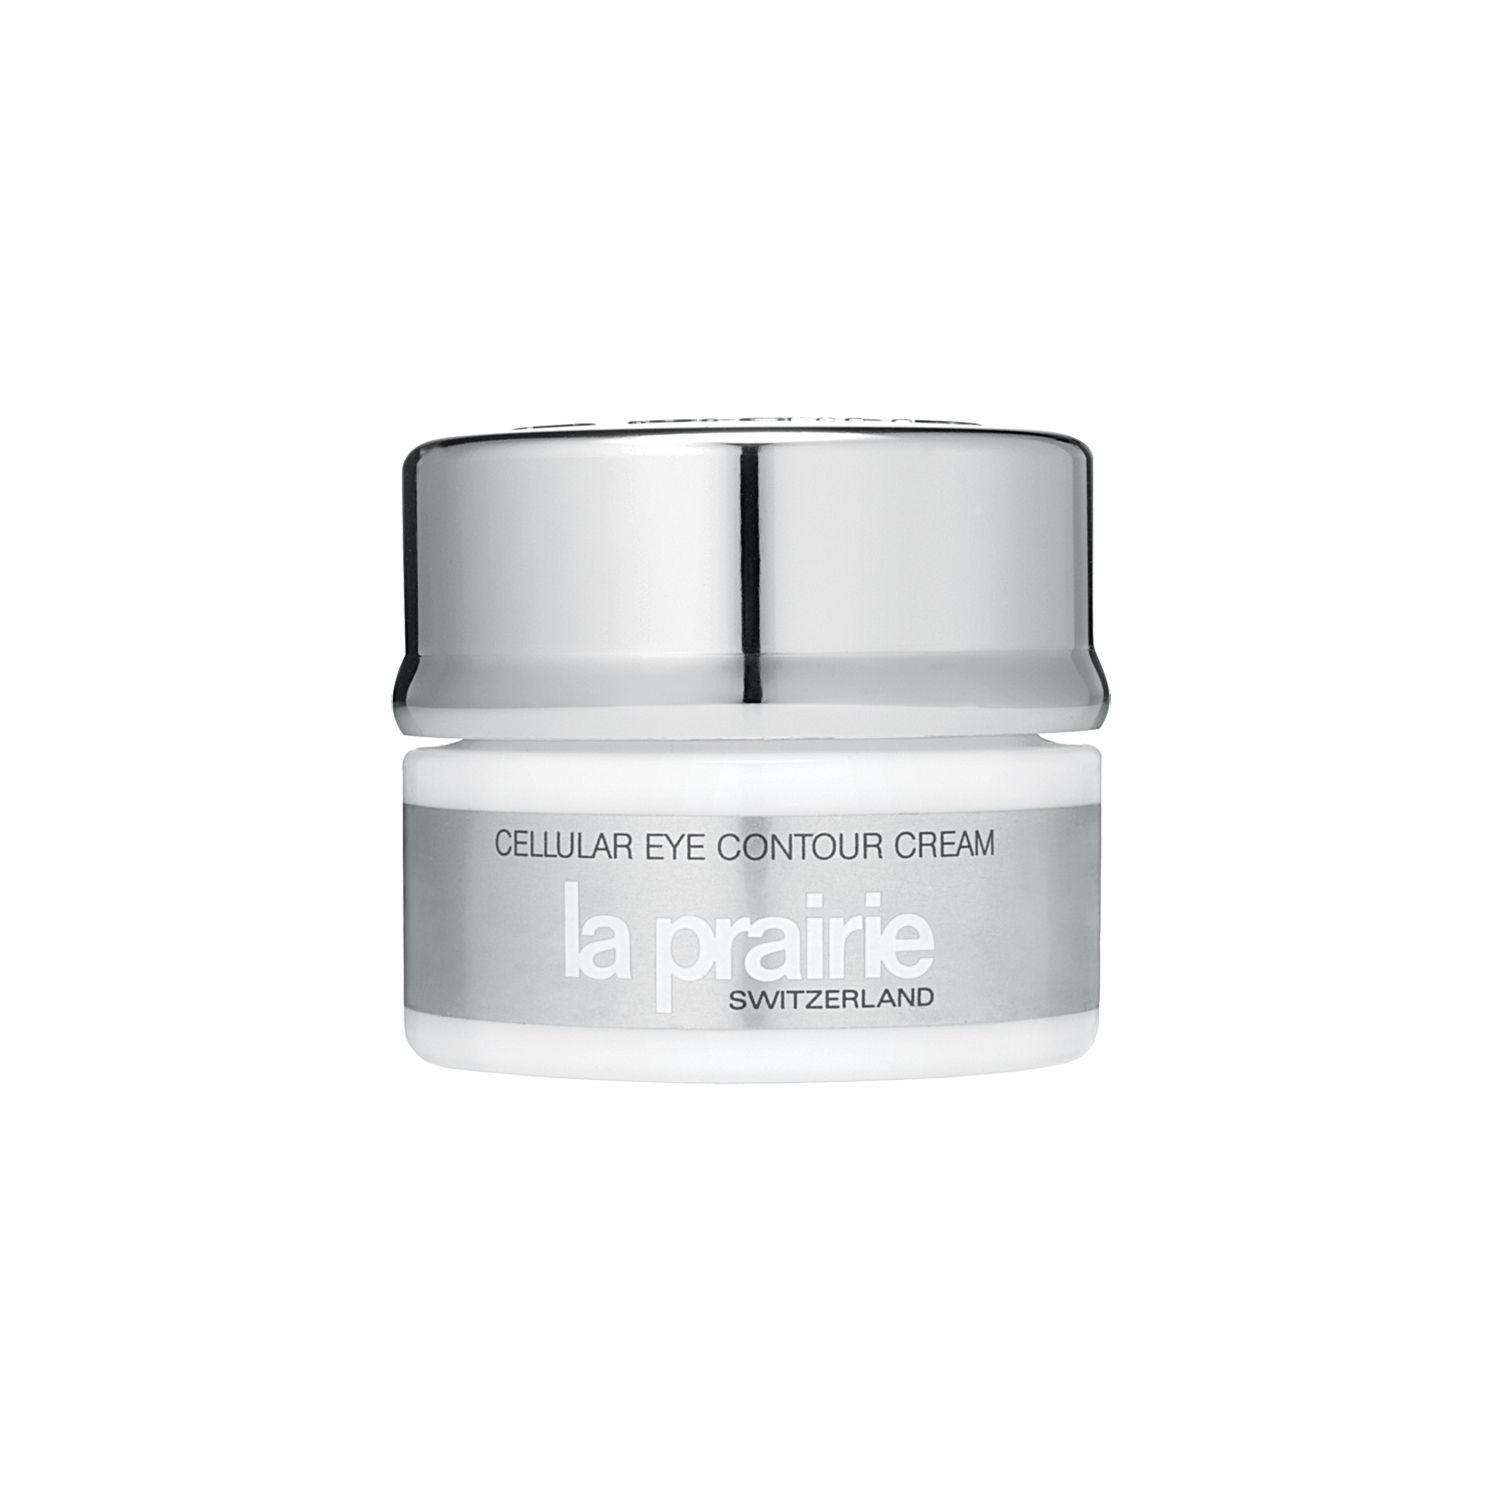 la prairie cellular eye contour cream 15 ml preisvergleich. Black Bedroom Furniture Sets. Home Design Ideas